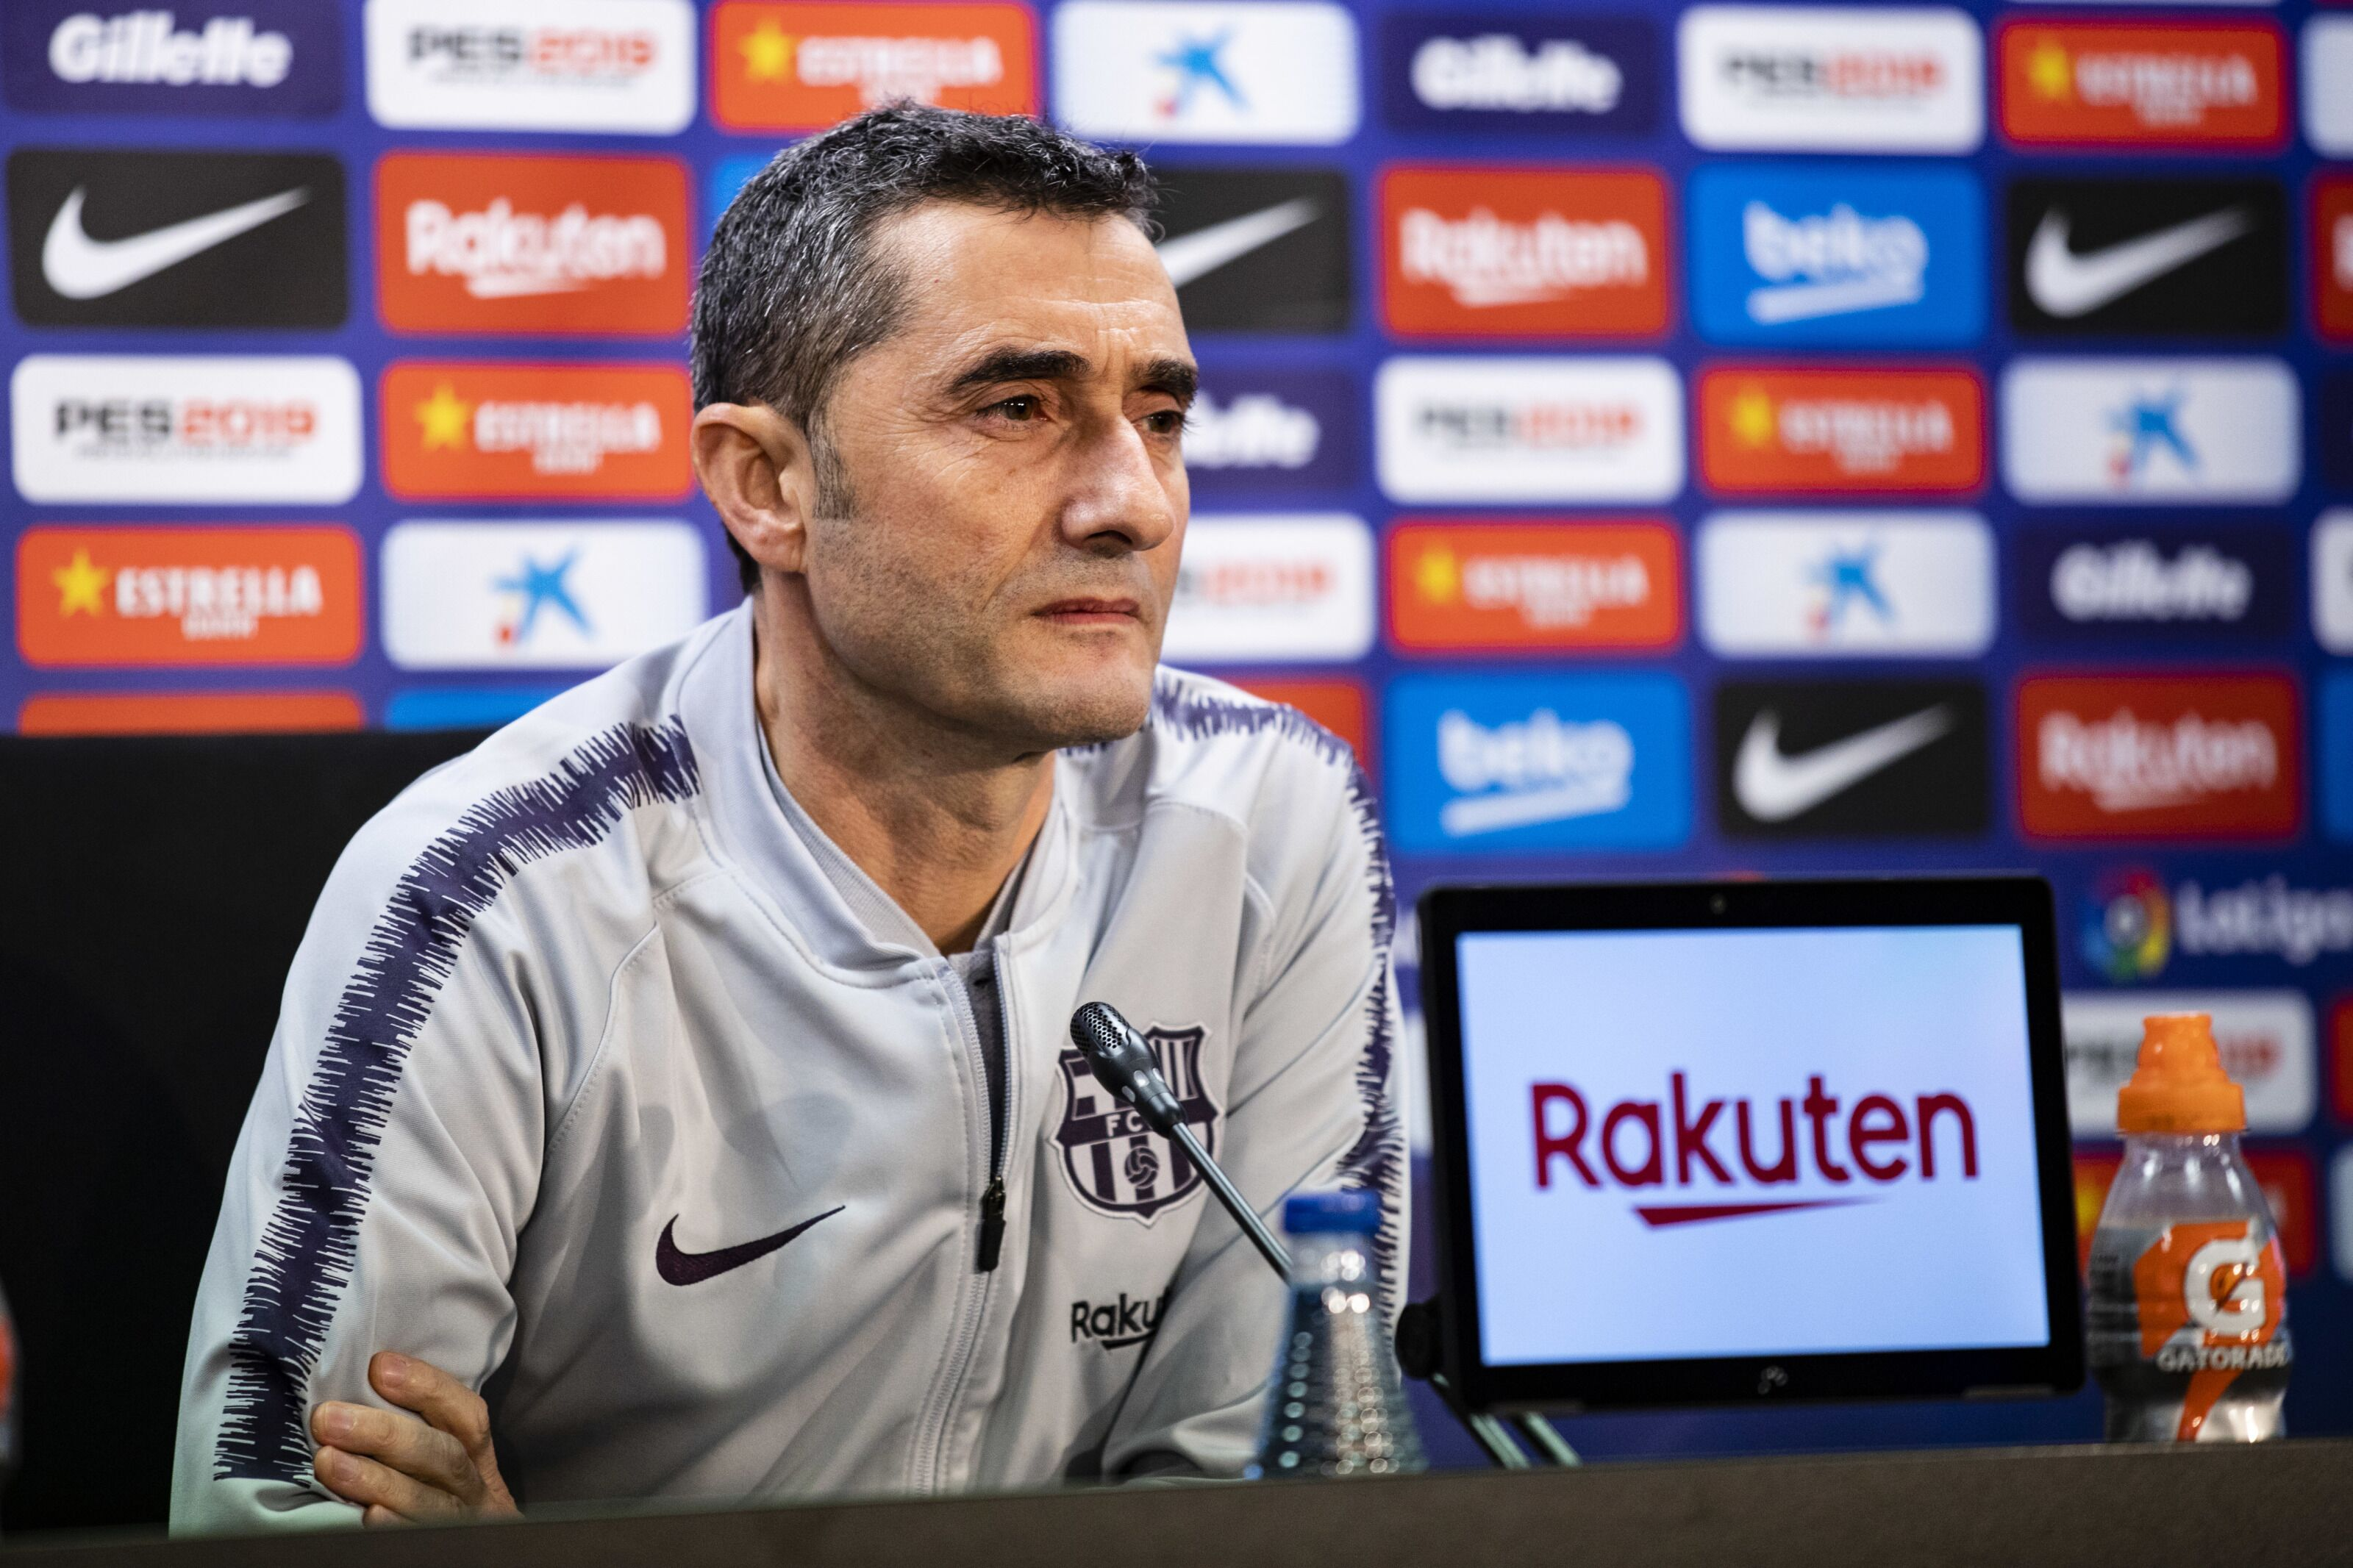 Barcelona: Ernesto Valverde puts his weight behind Kevin-Prince Boateng